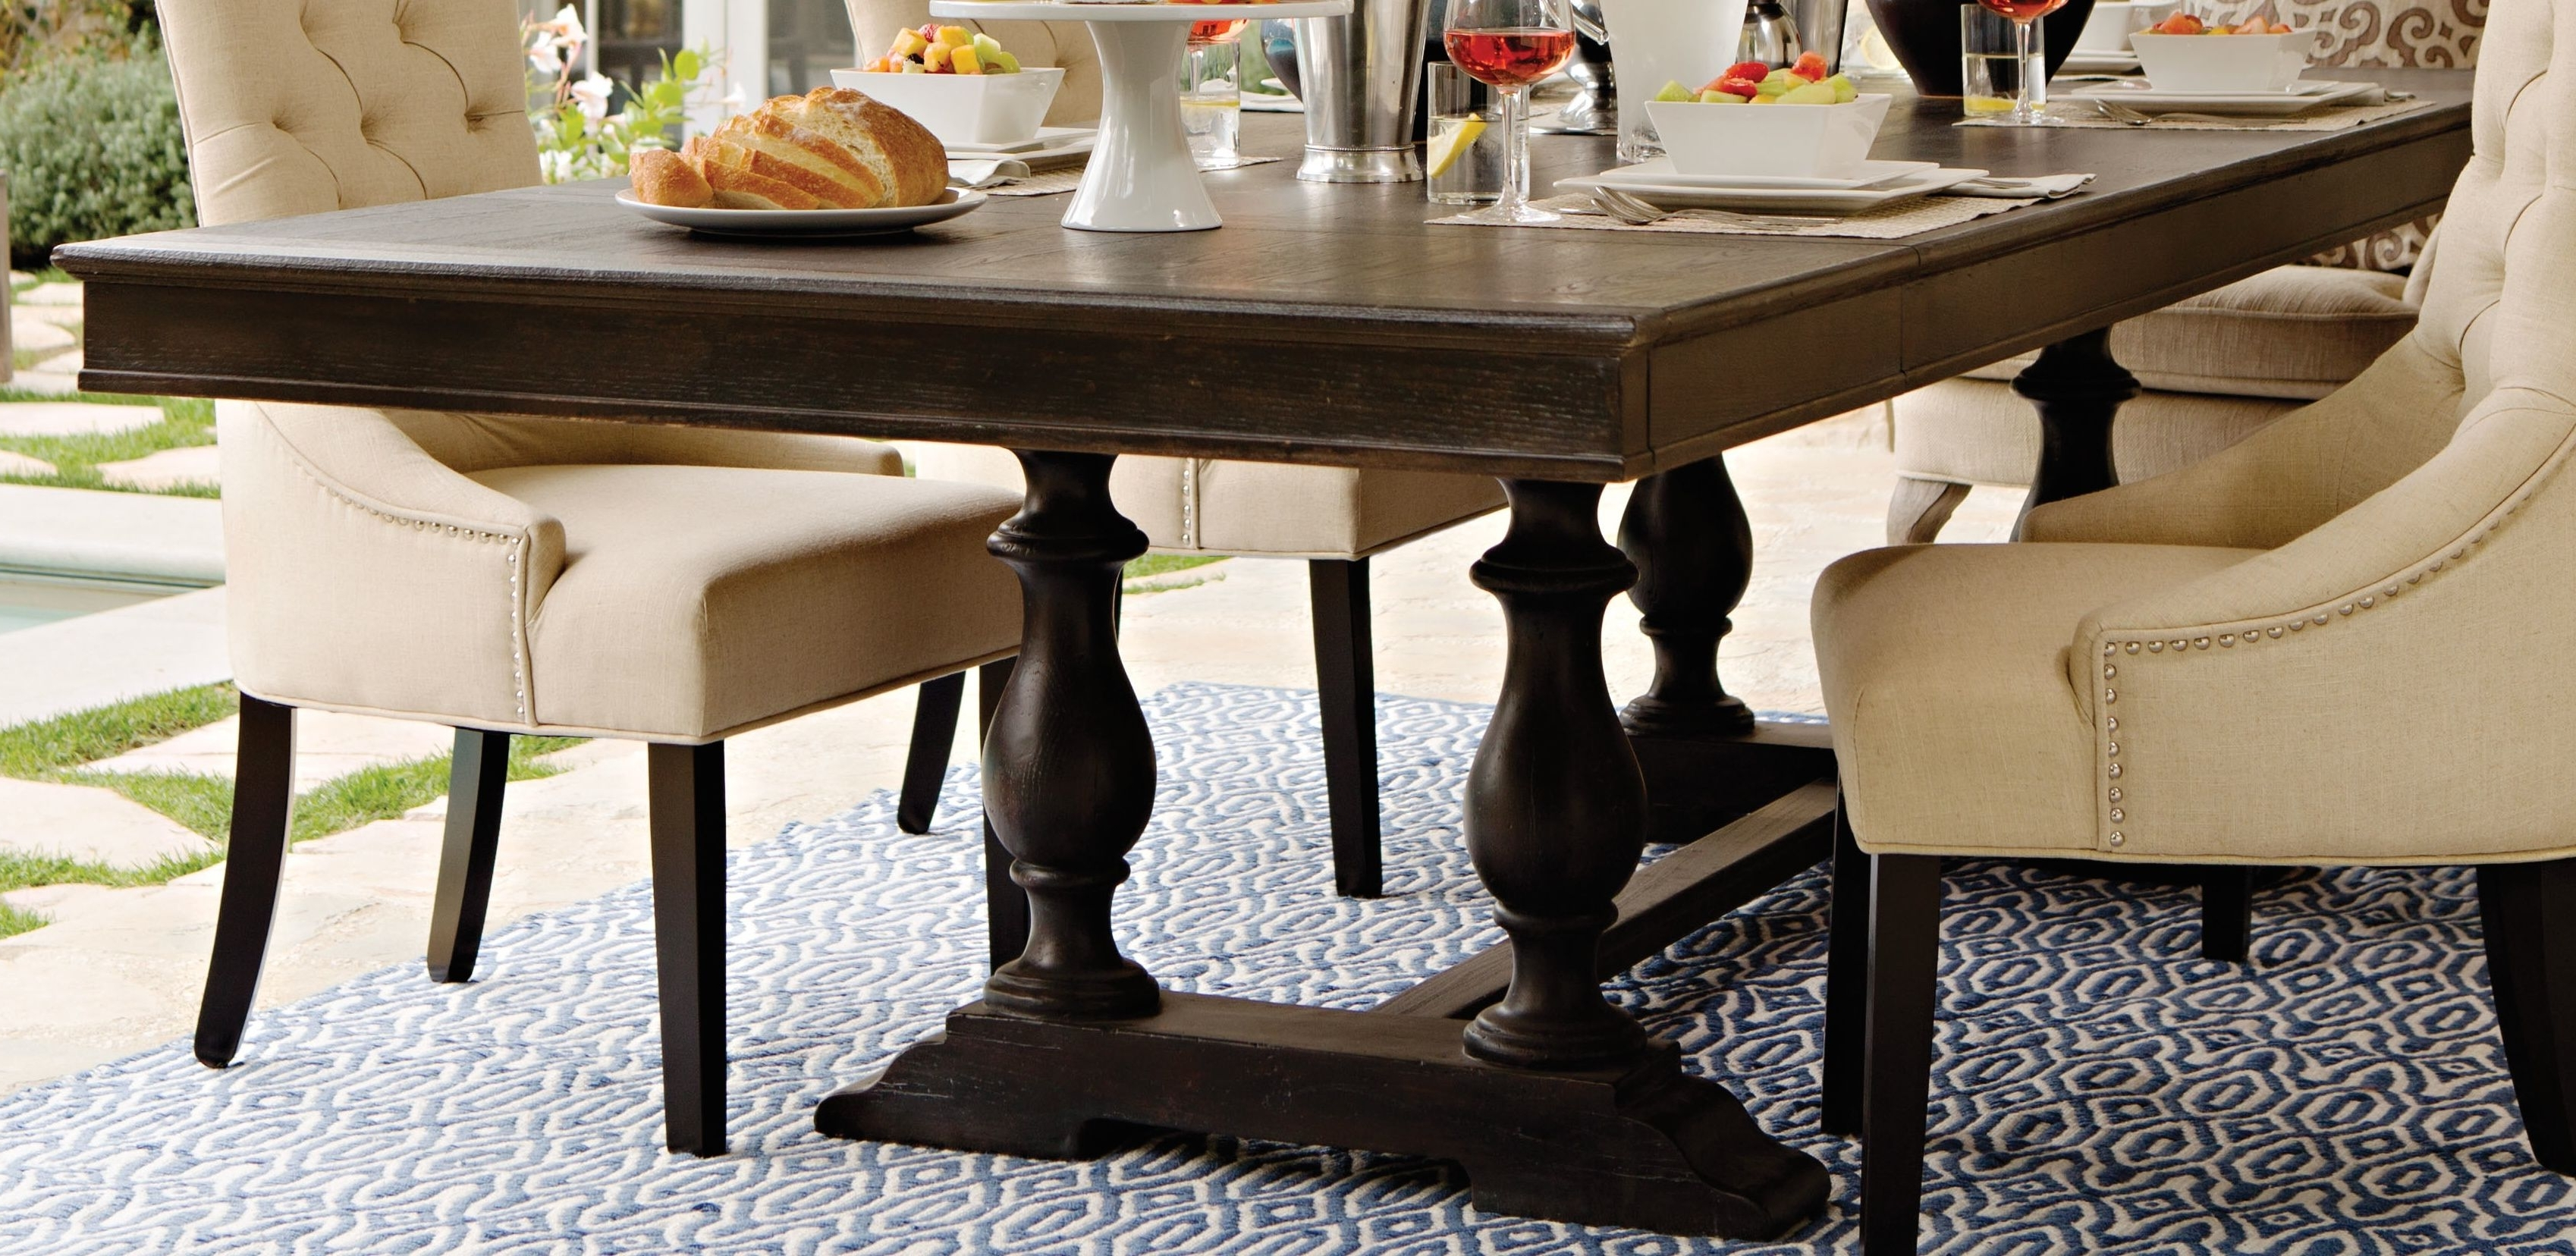 Chapleau Ii 9 Piece Extension Dining Tables With Side Chairs For Newest Chapleau Extension Dining Table (View 5 of 25)